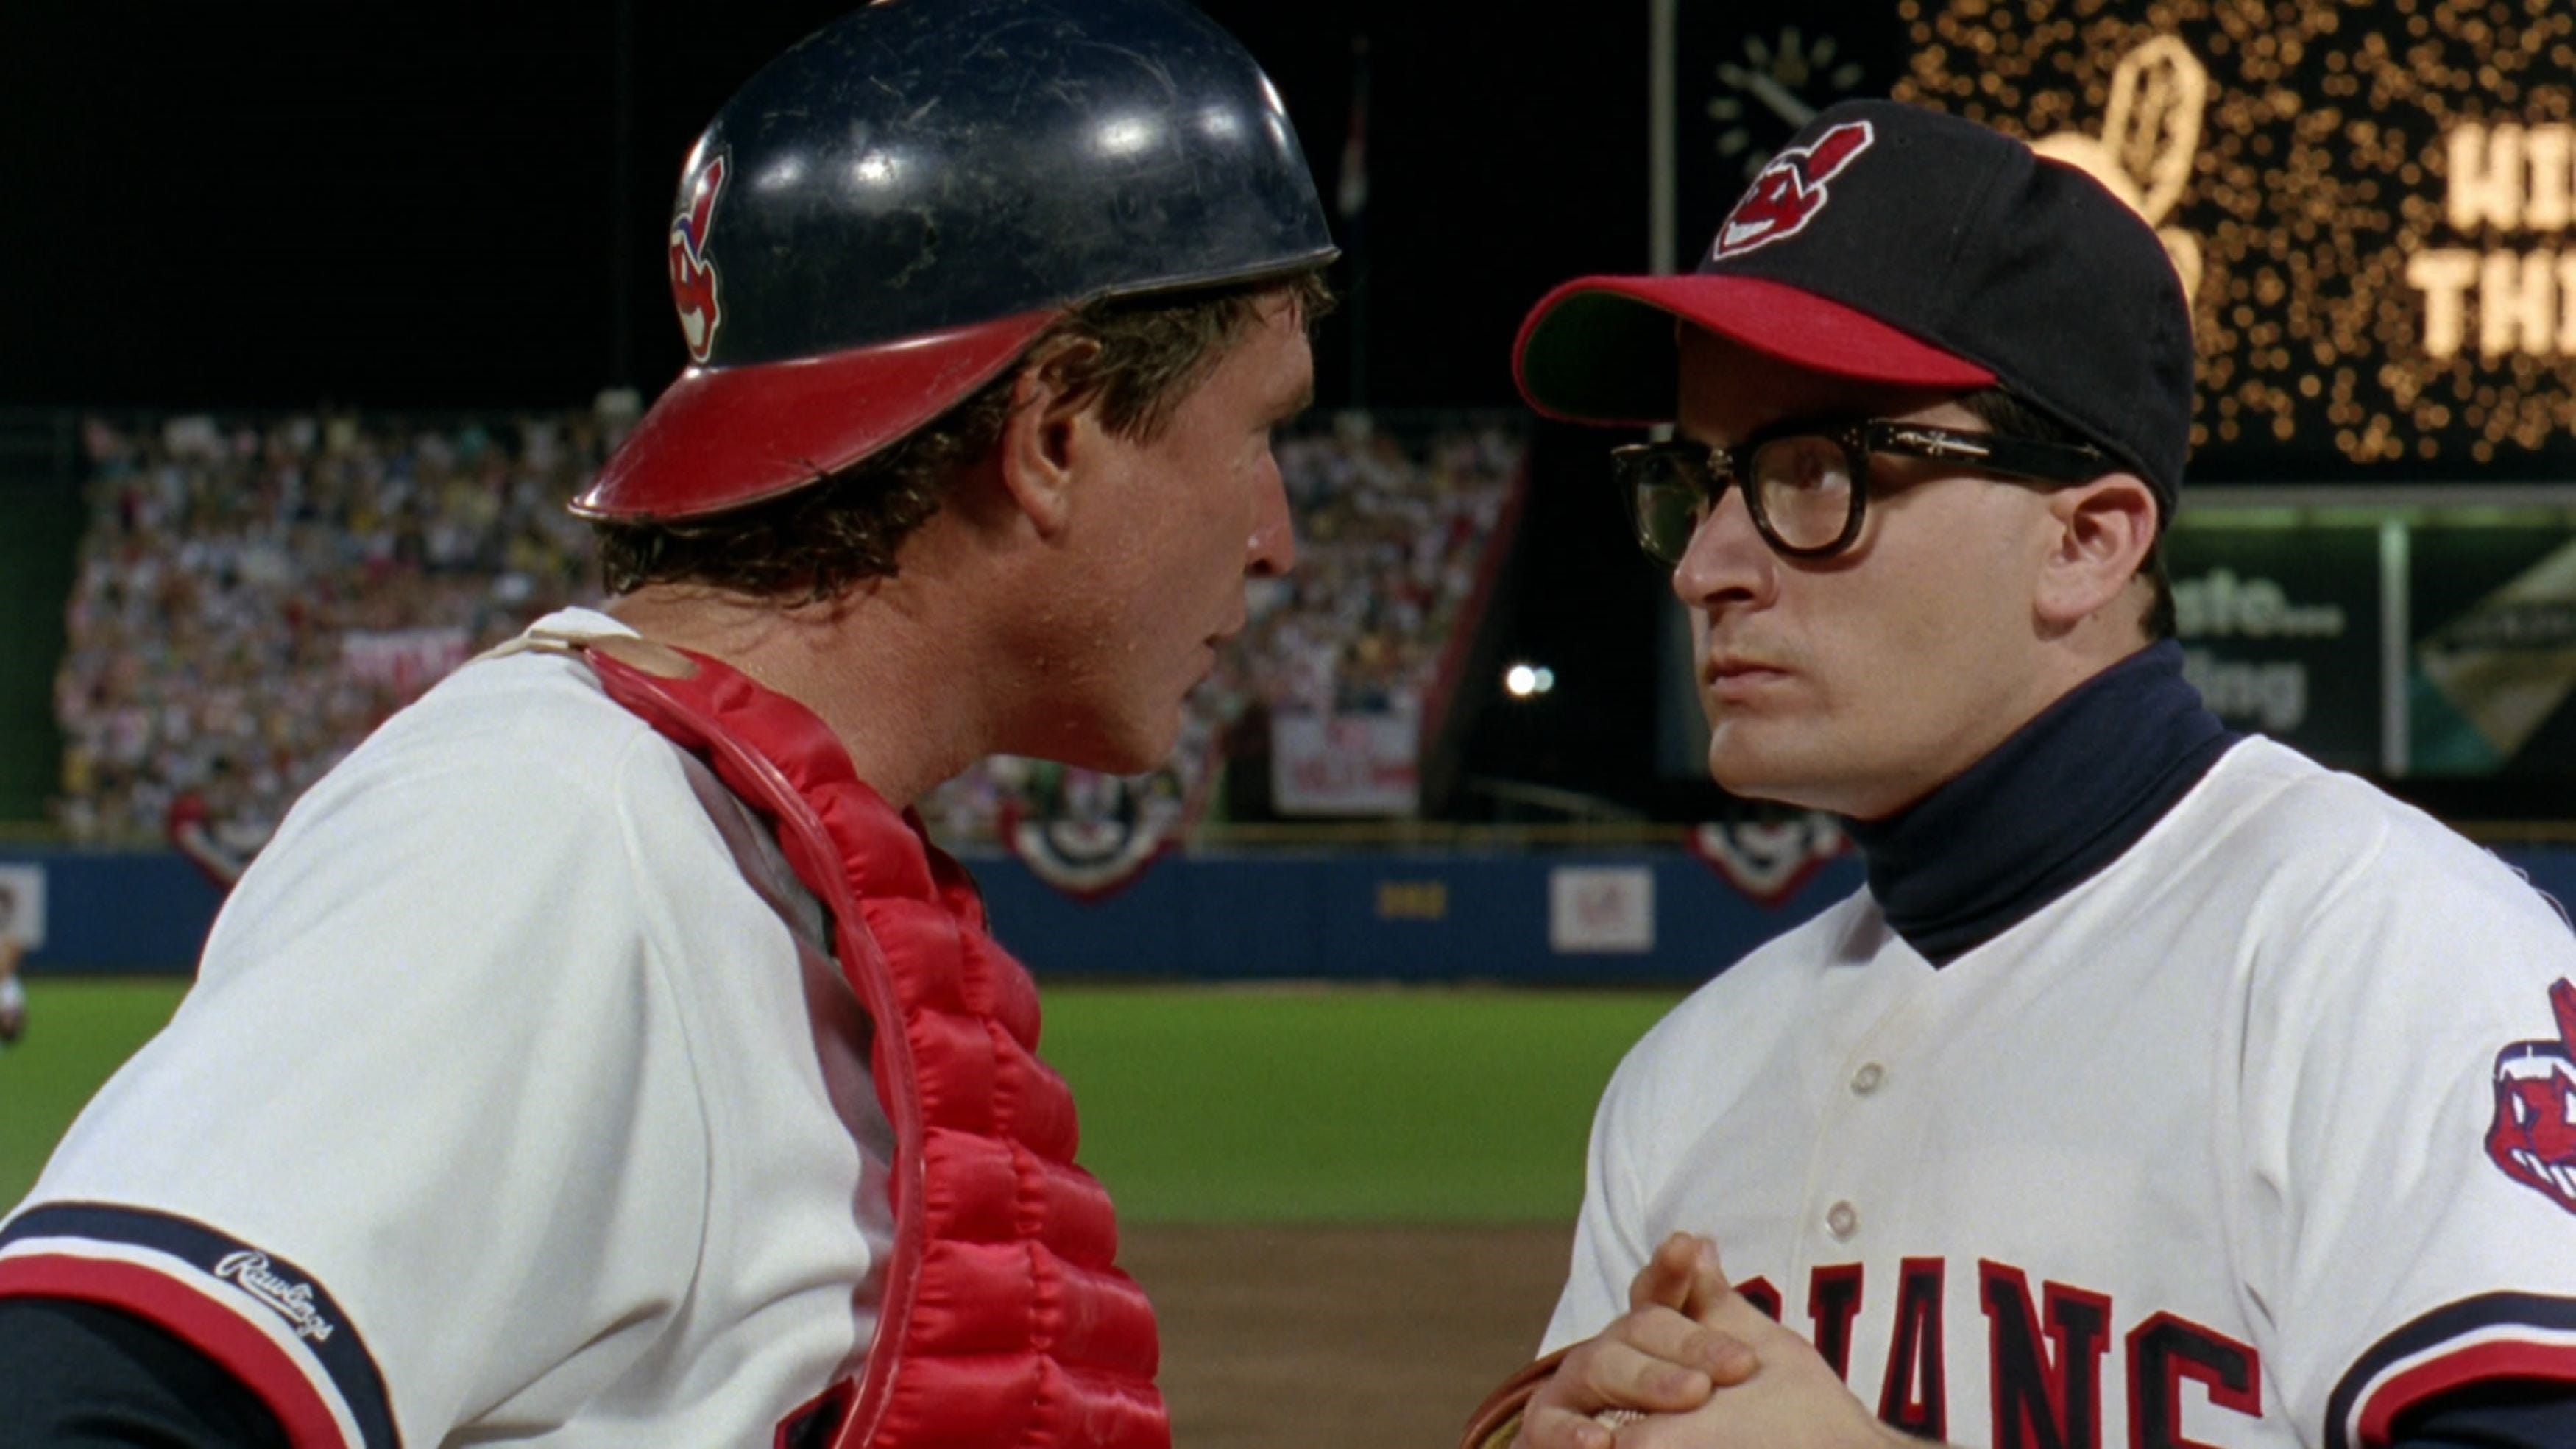 Symkus column: America s national pastime goes to the movies